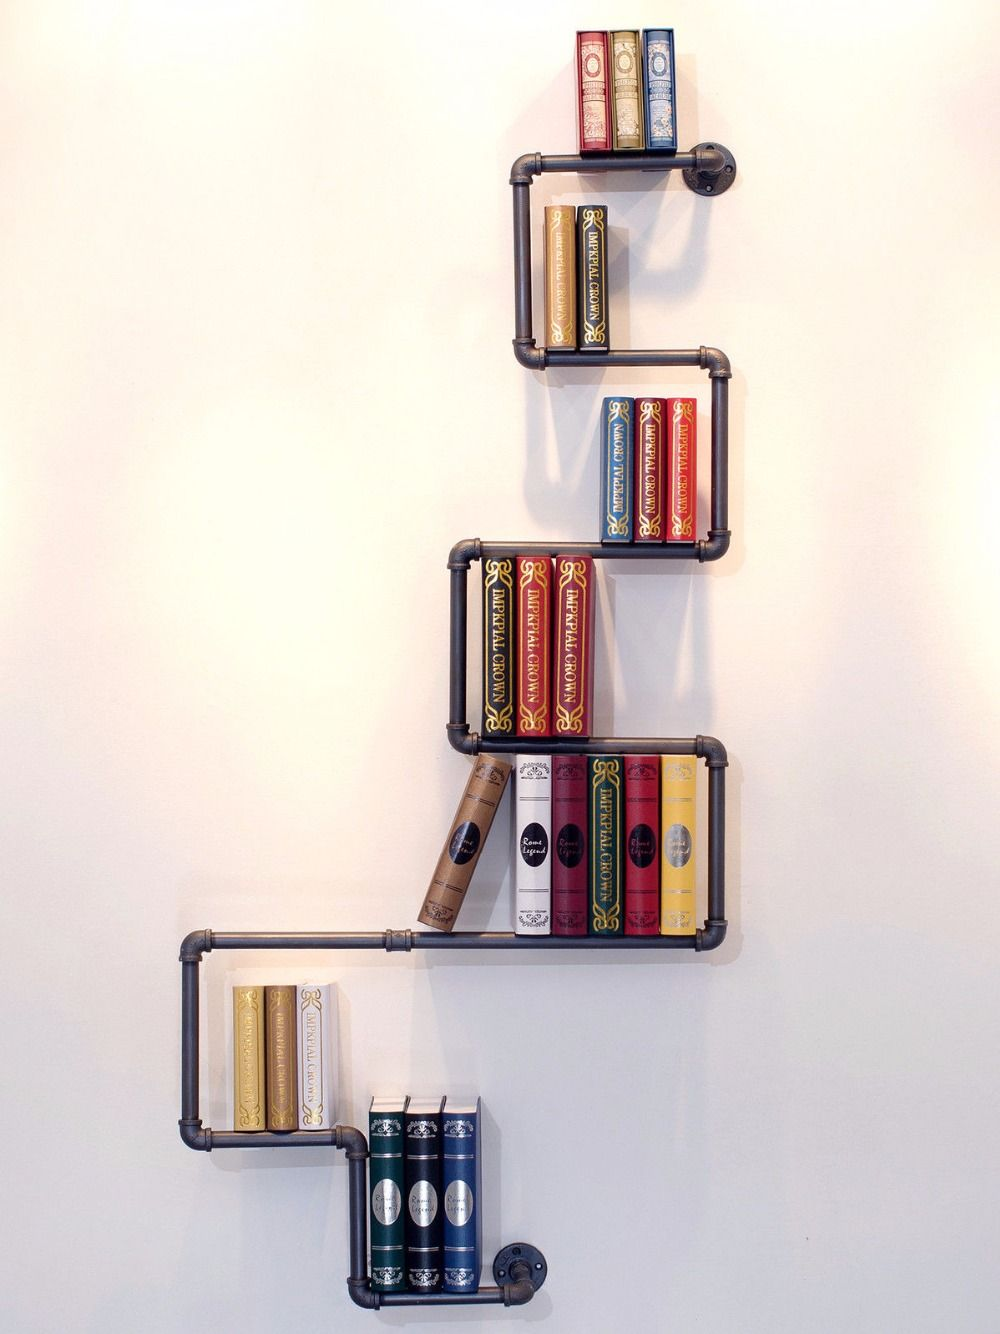 Cheap Pipe Stock Buy Quality Bookshelf Ladder Directly From China Api Suppliers DescriptionDIY Industrial Retro Wall Mount Iron Shelf Storage